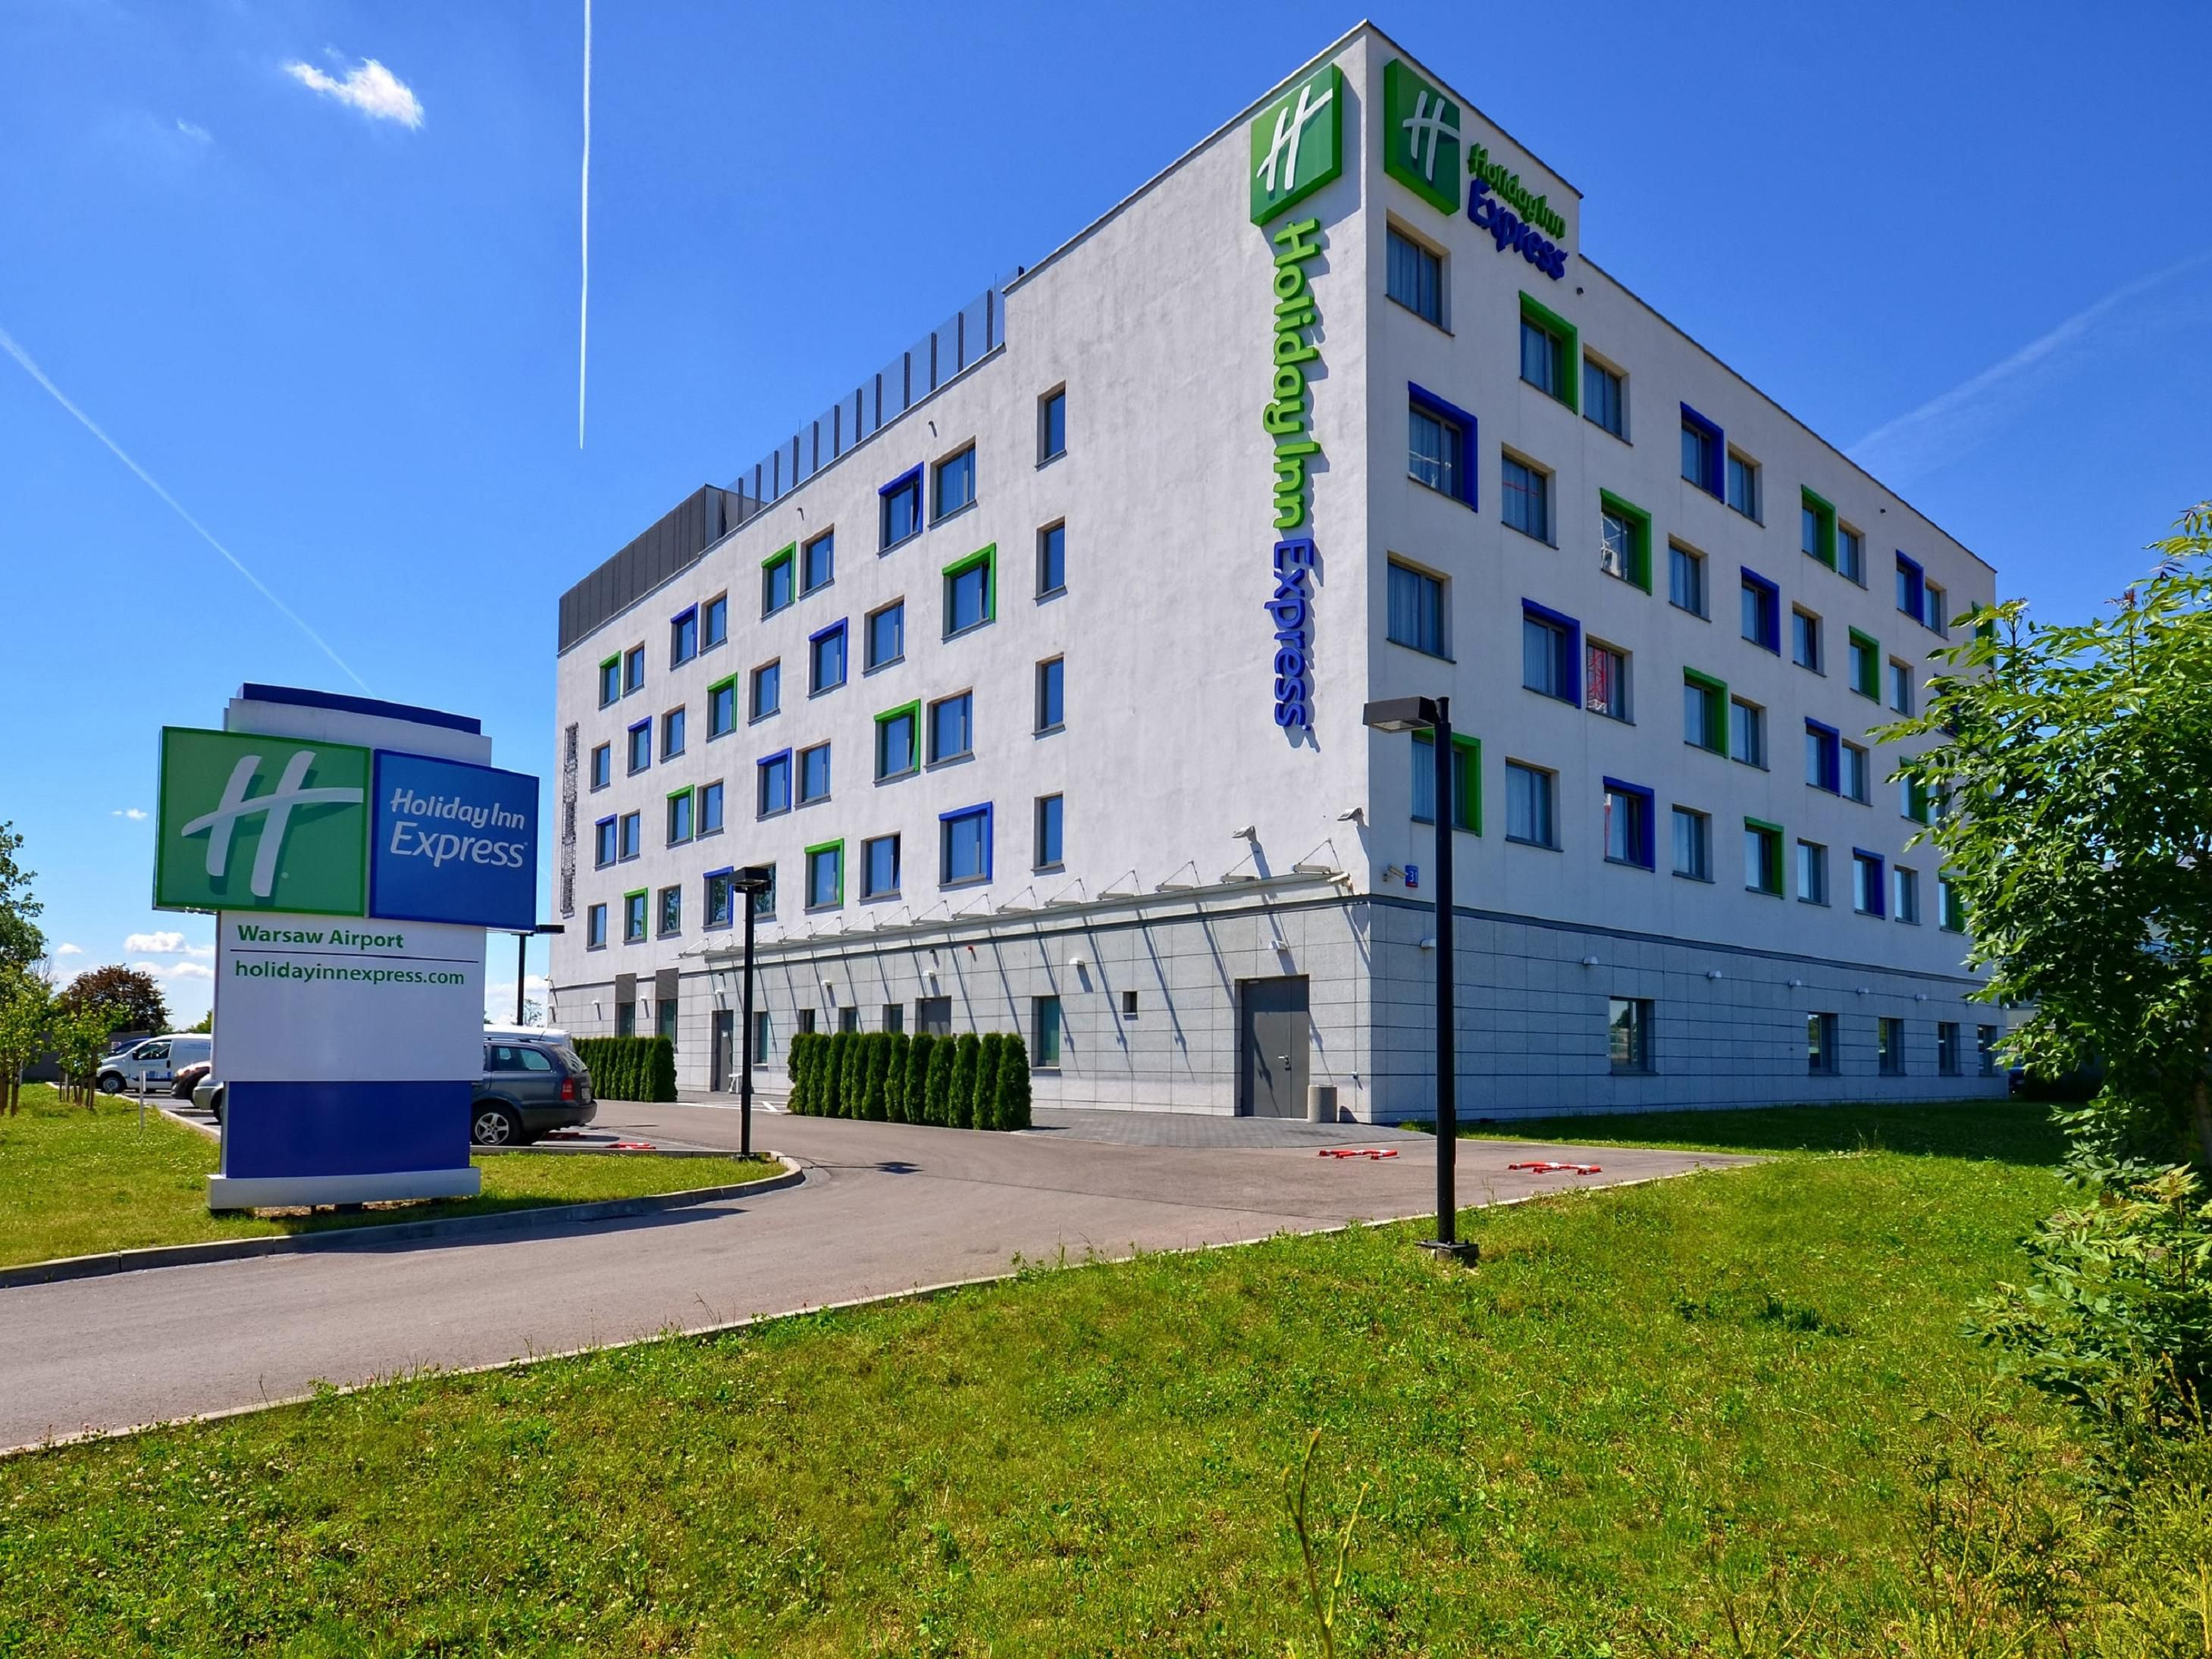 Airport Hotel Holiday Inn Express Hotel Warsaw Airport